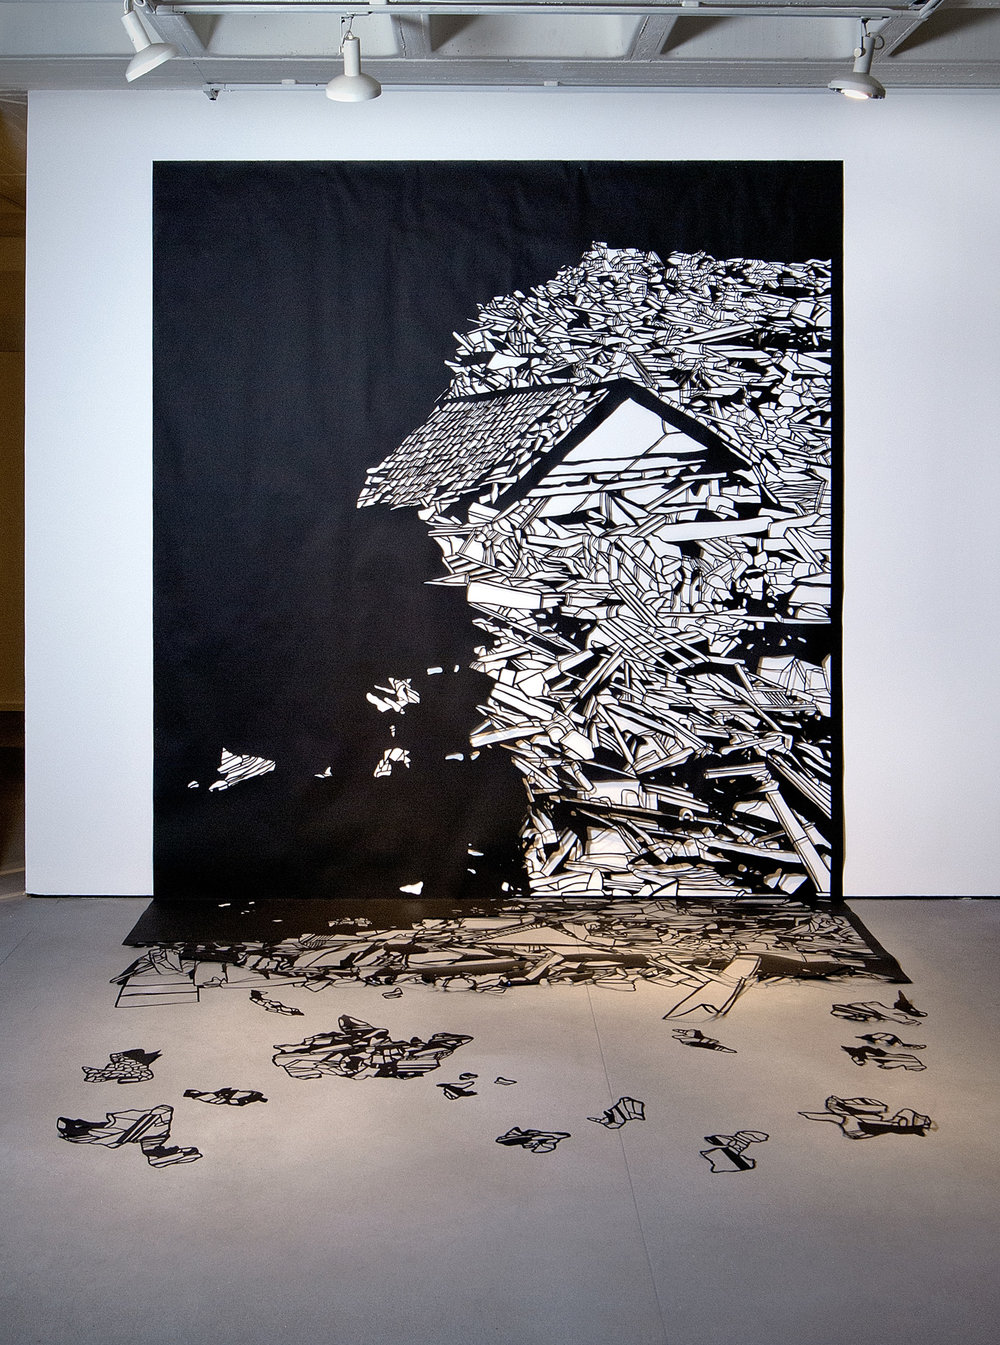 Noa Yekutieli, Home As a Brittle Surface, 2013, Manual paper cutting, 4x4x3m